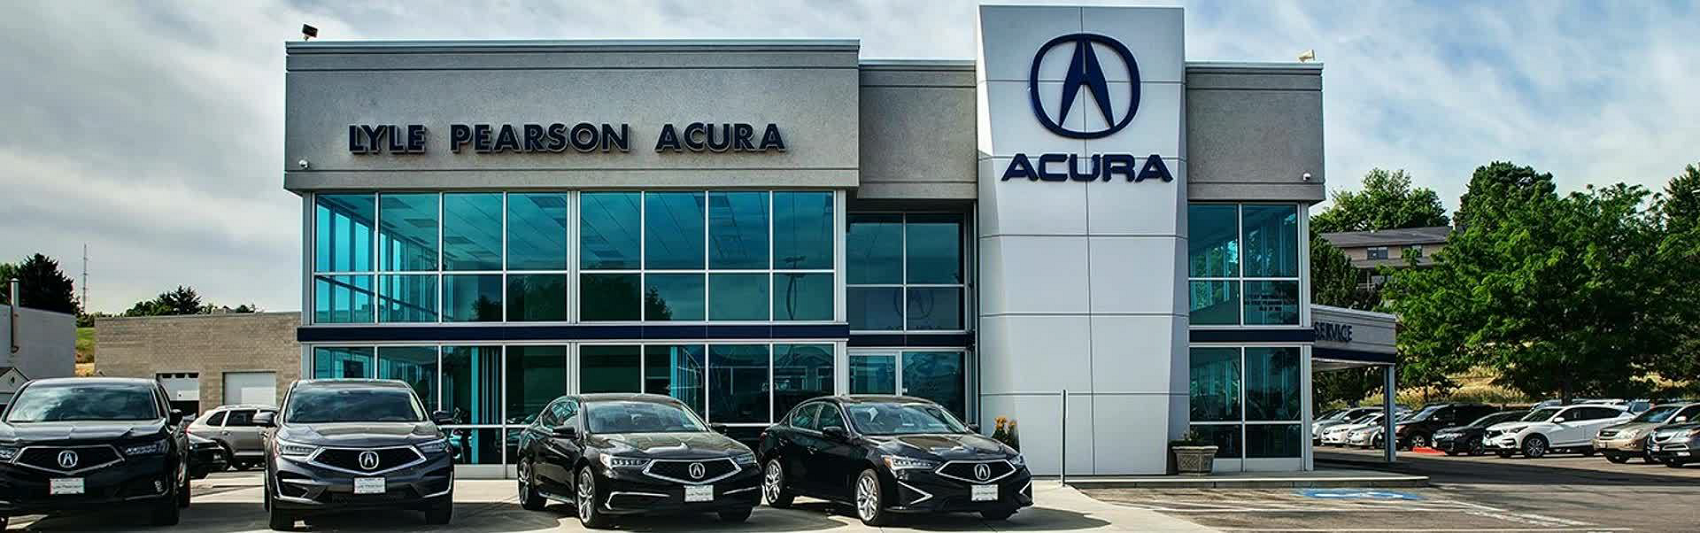 Lyle Pearson Acura Dealer in Boise ID